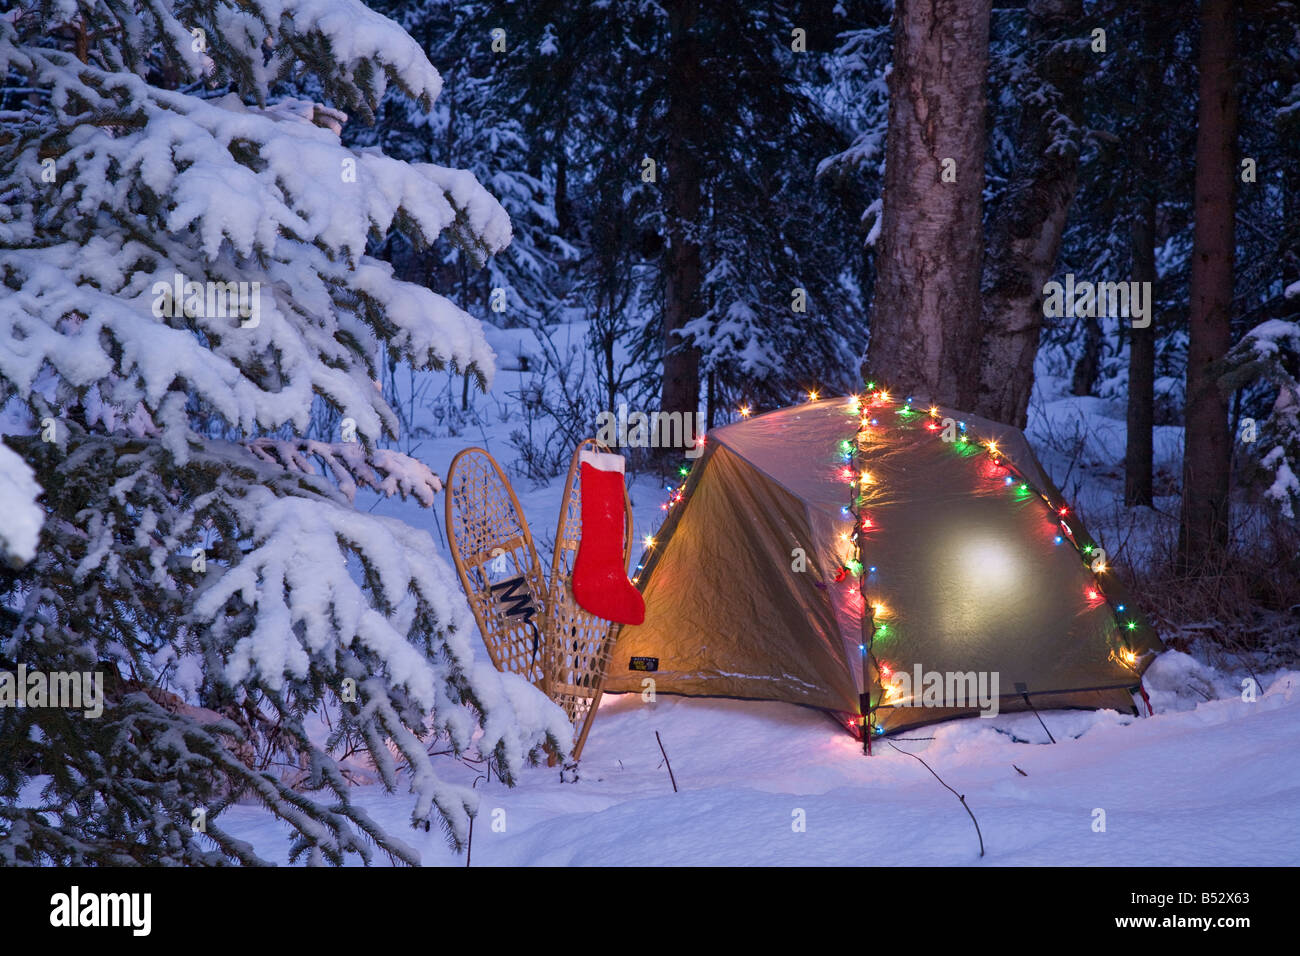 Christmas In The Woods.A Tent Is Set Up In The Woods With Christmas Lights And